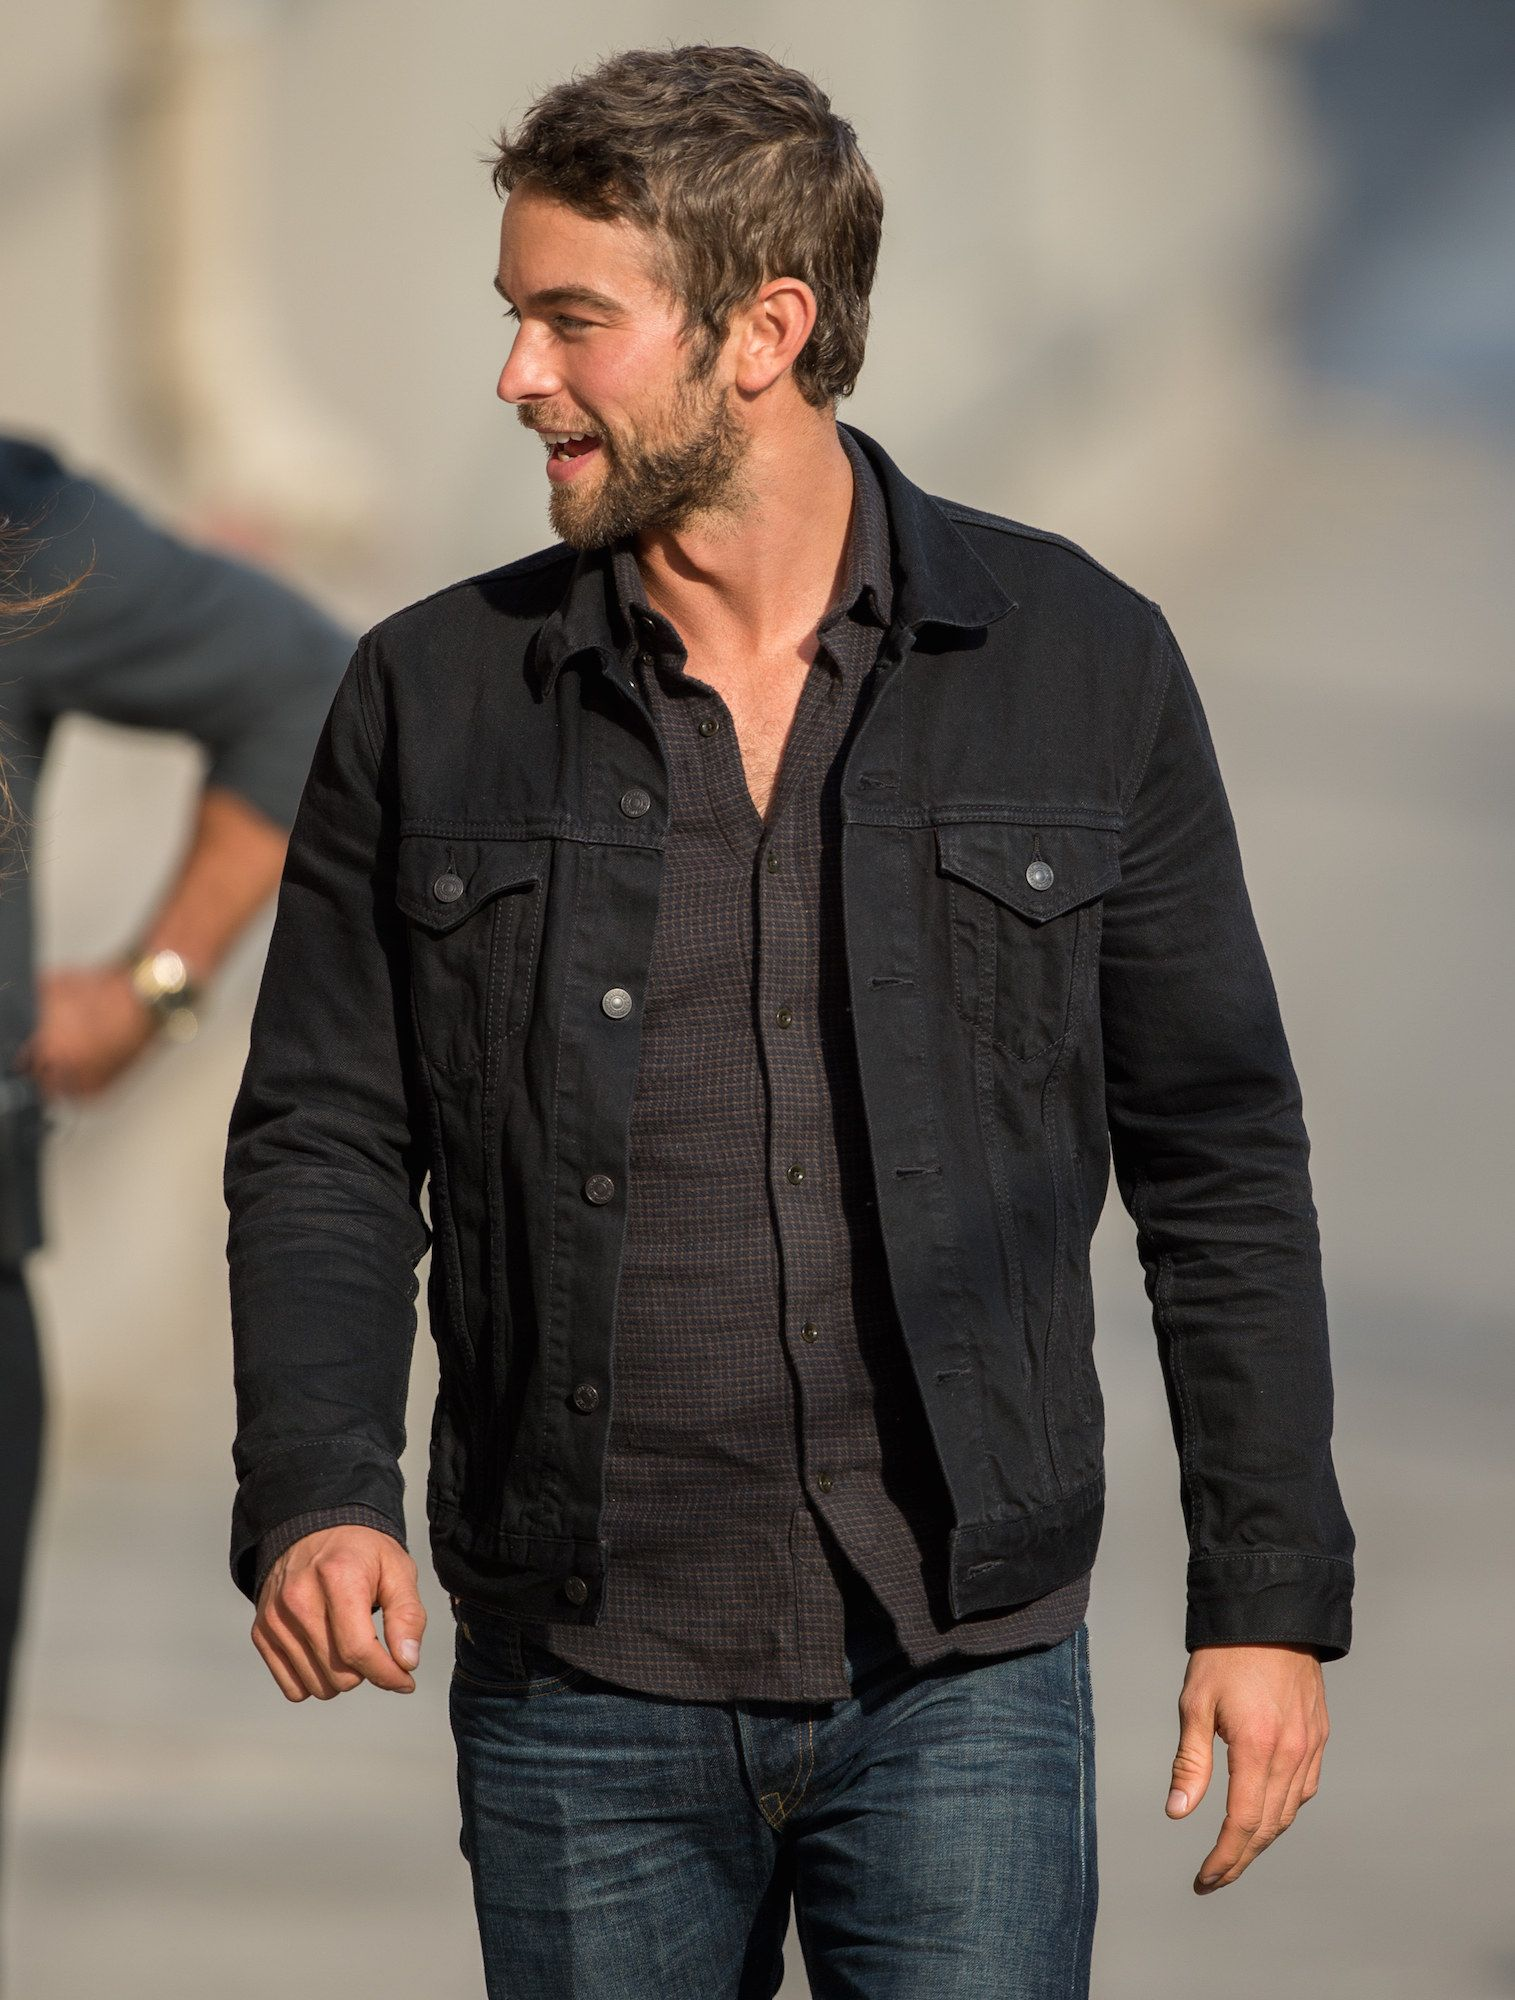 The Denim Jacket You Can Wear Out At Night Black Denim Jacket Men Black Denim Jacket Outfit Black Denim Jacket